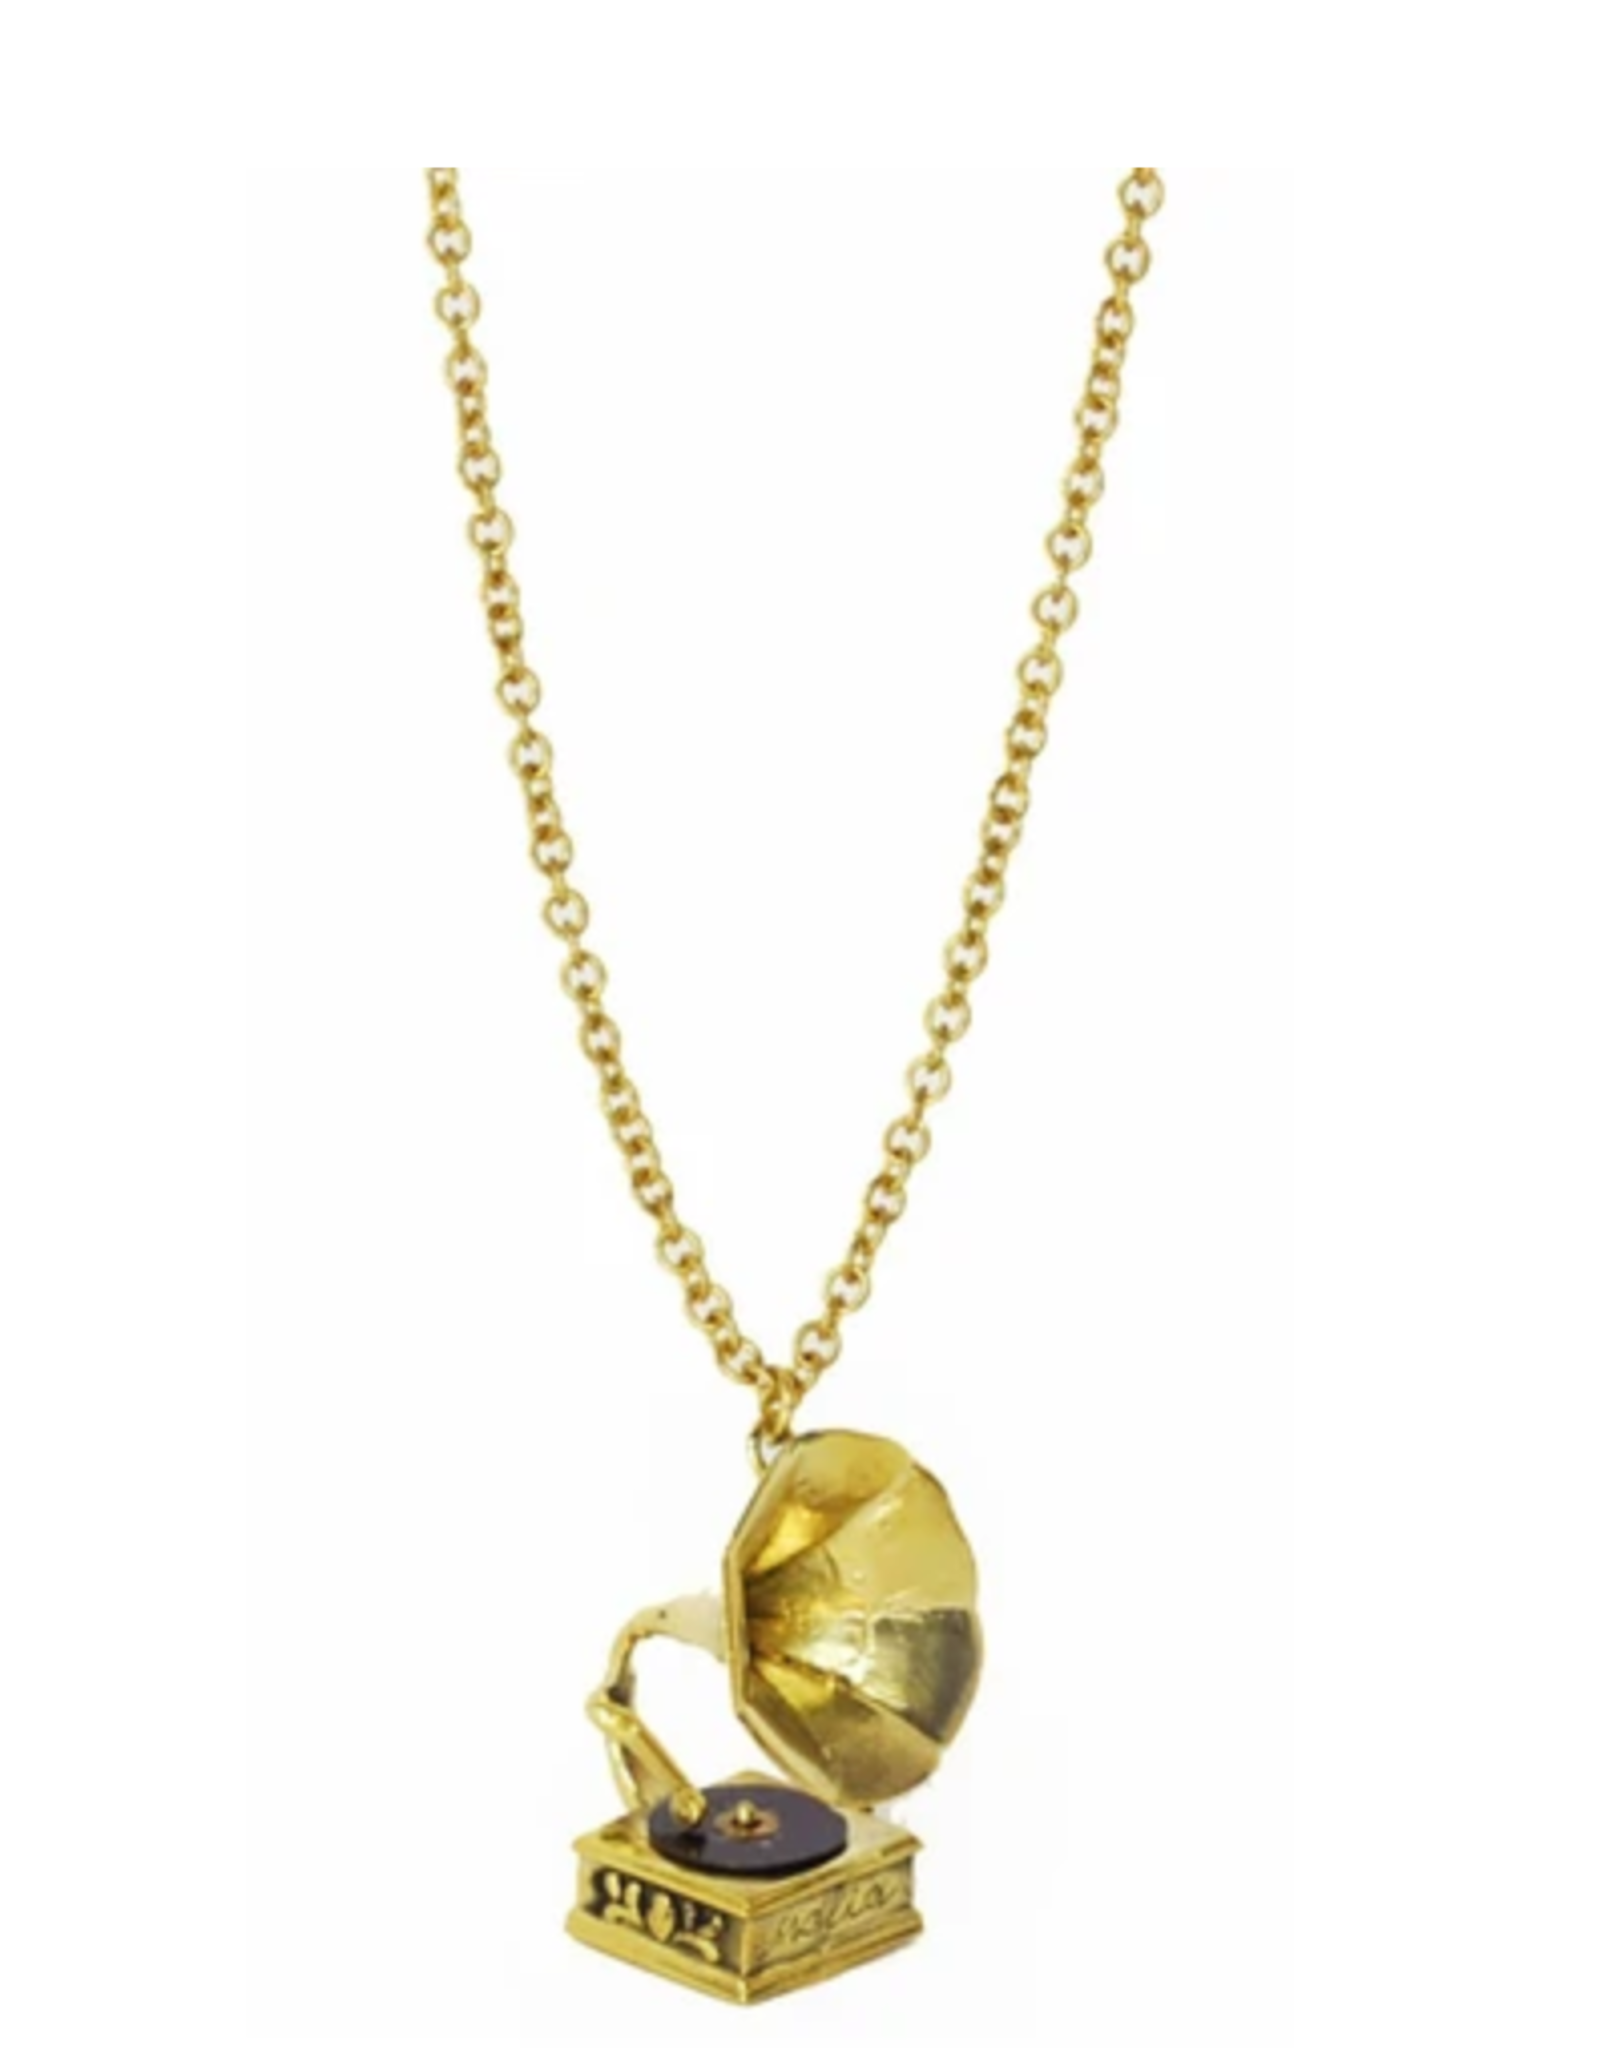 Phonograph Necklace - Brass